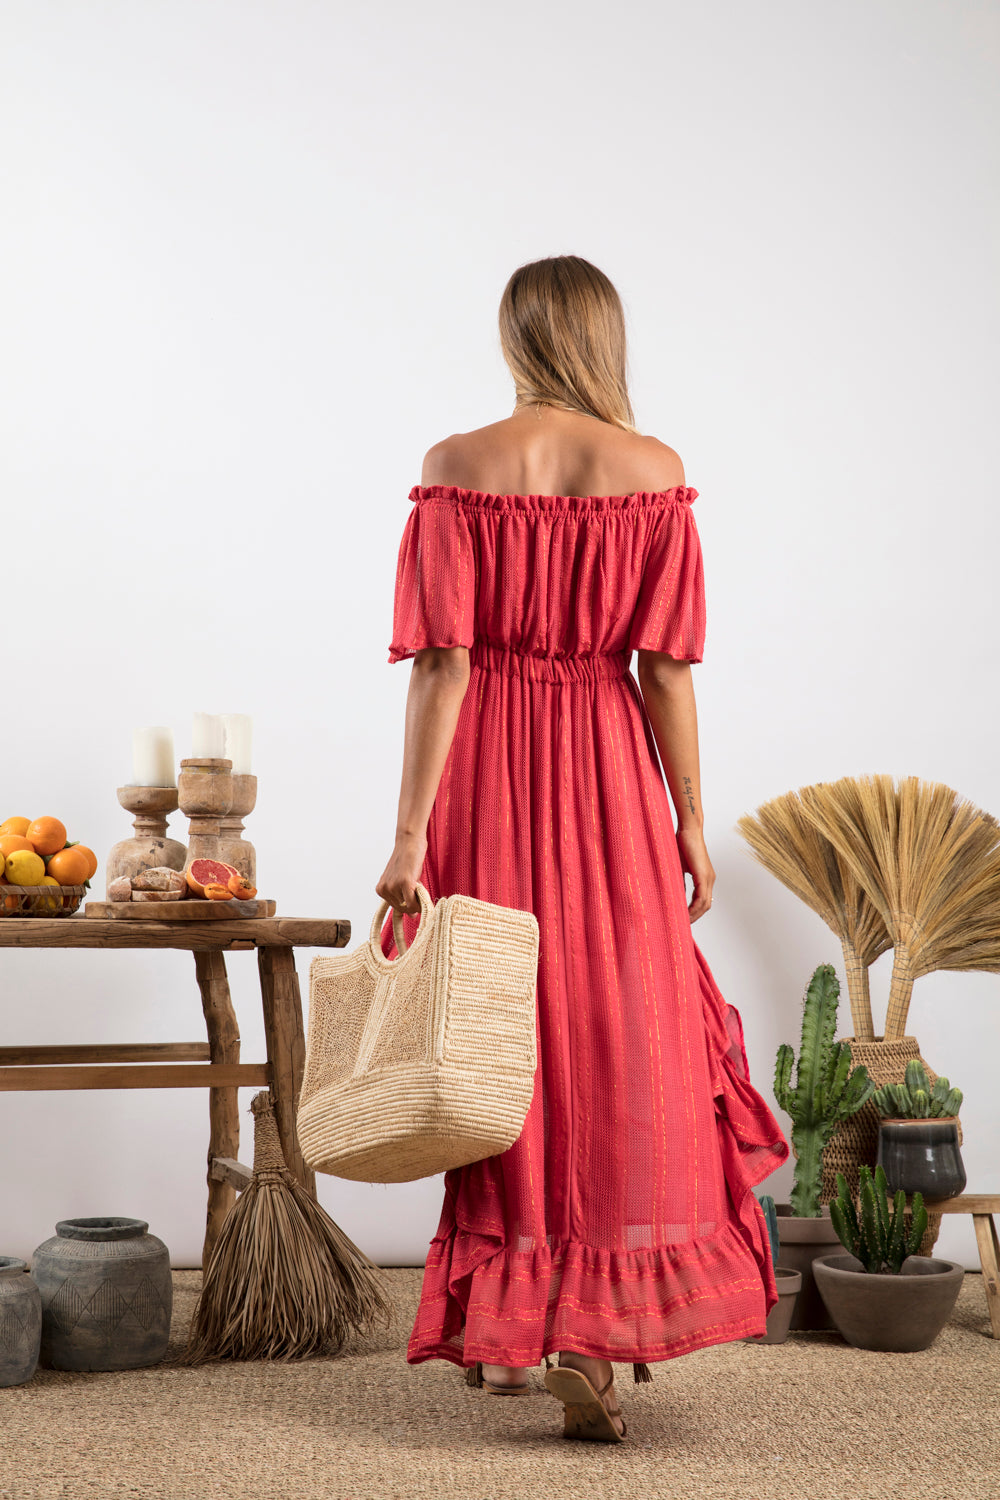 Sundress Alena Off the Shoulder Asymmetrical Maxi Holiday Beach Dress